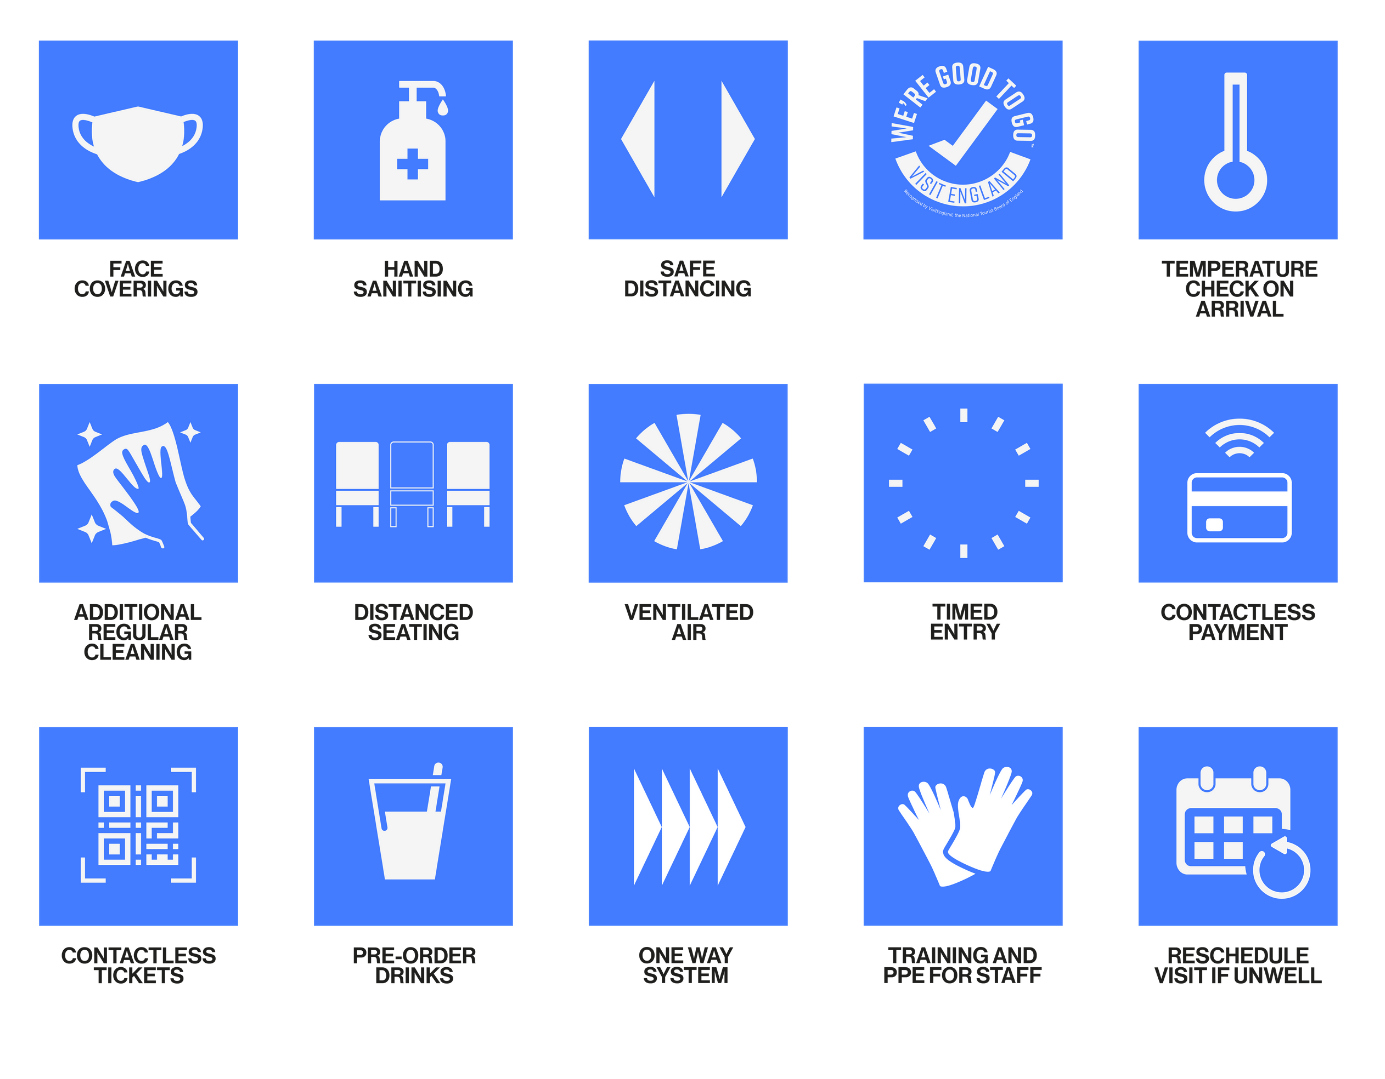 Image: Covid Safety Icons